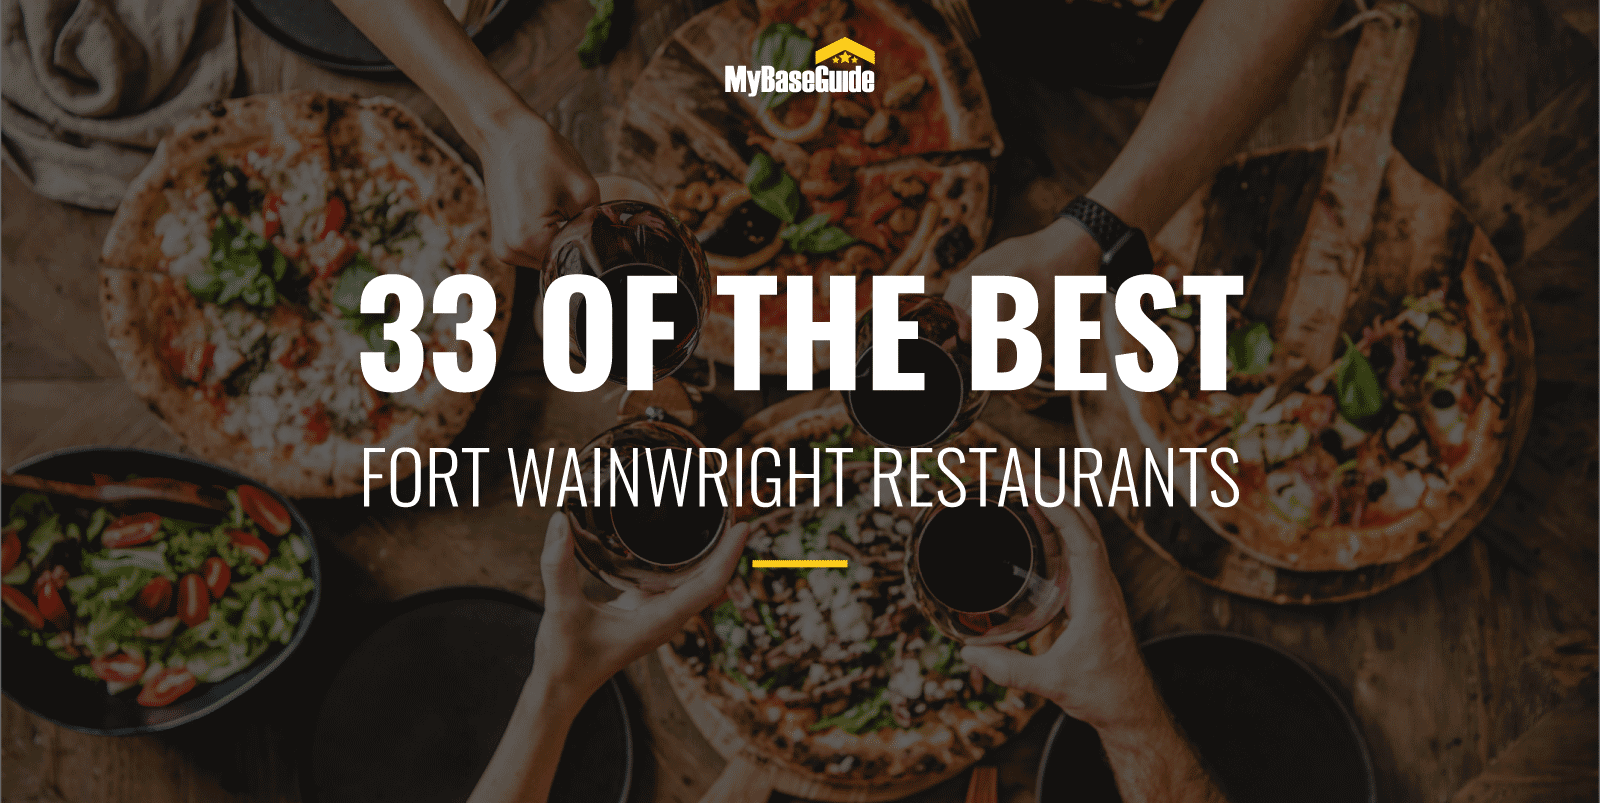 33 of the Best Fort Wainwright Restaurants